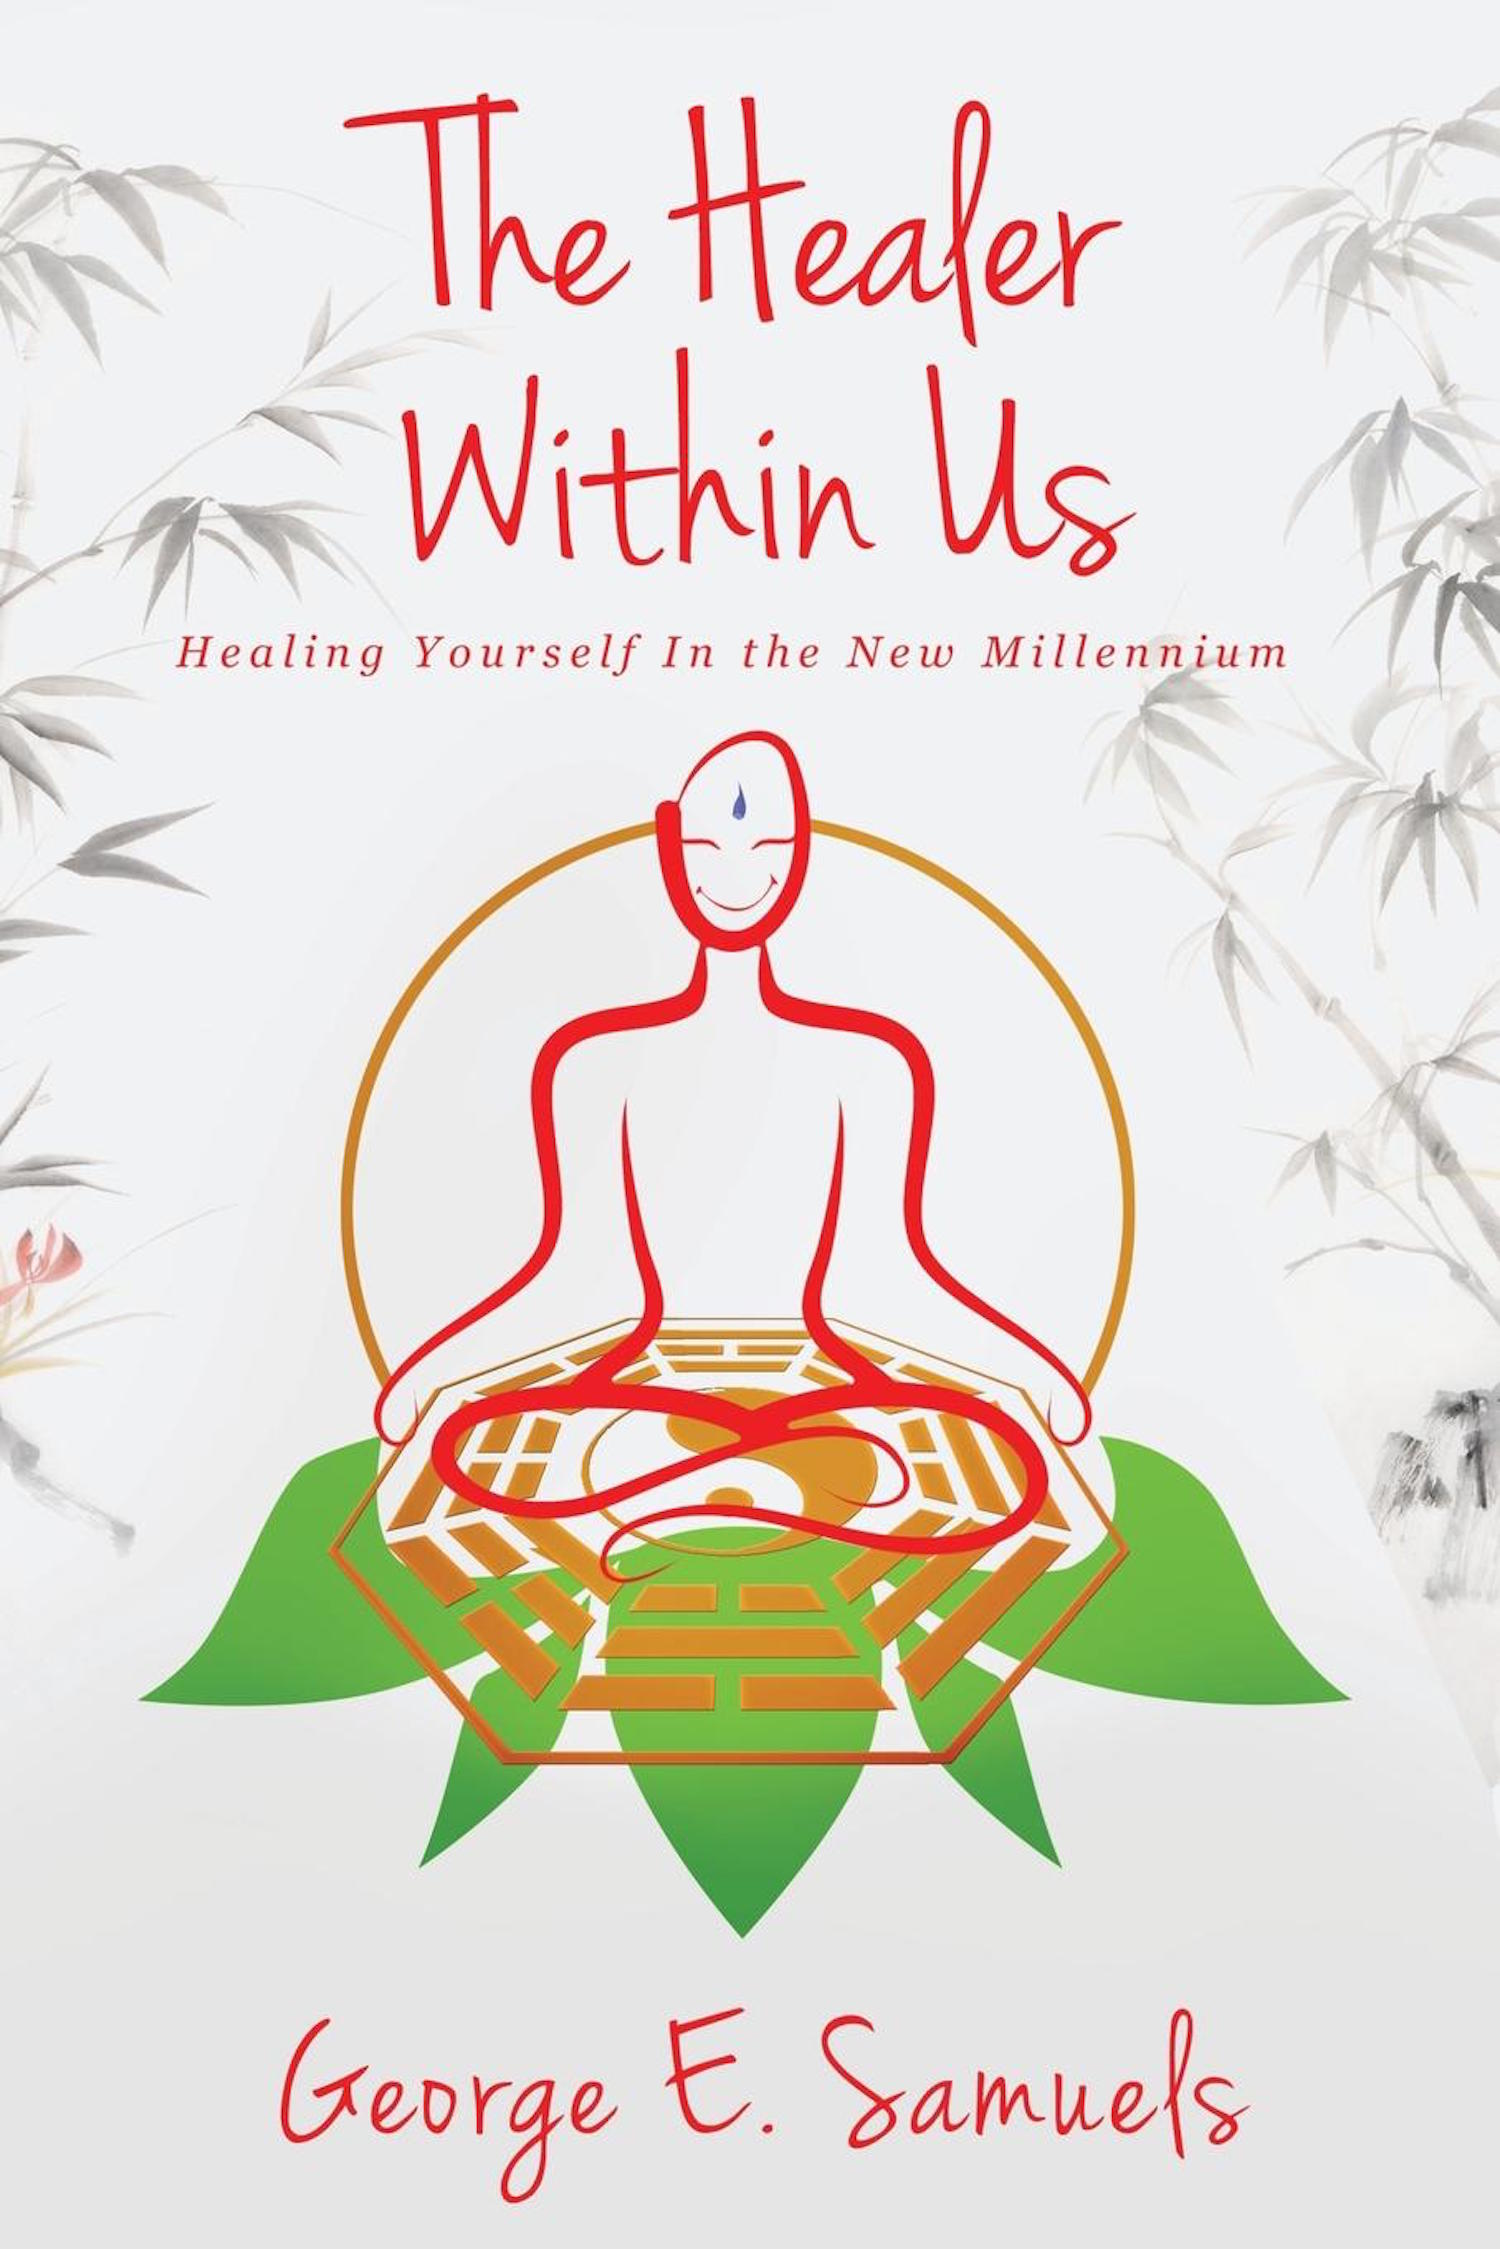 The Healer Within Us